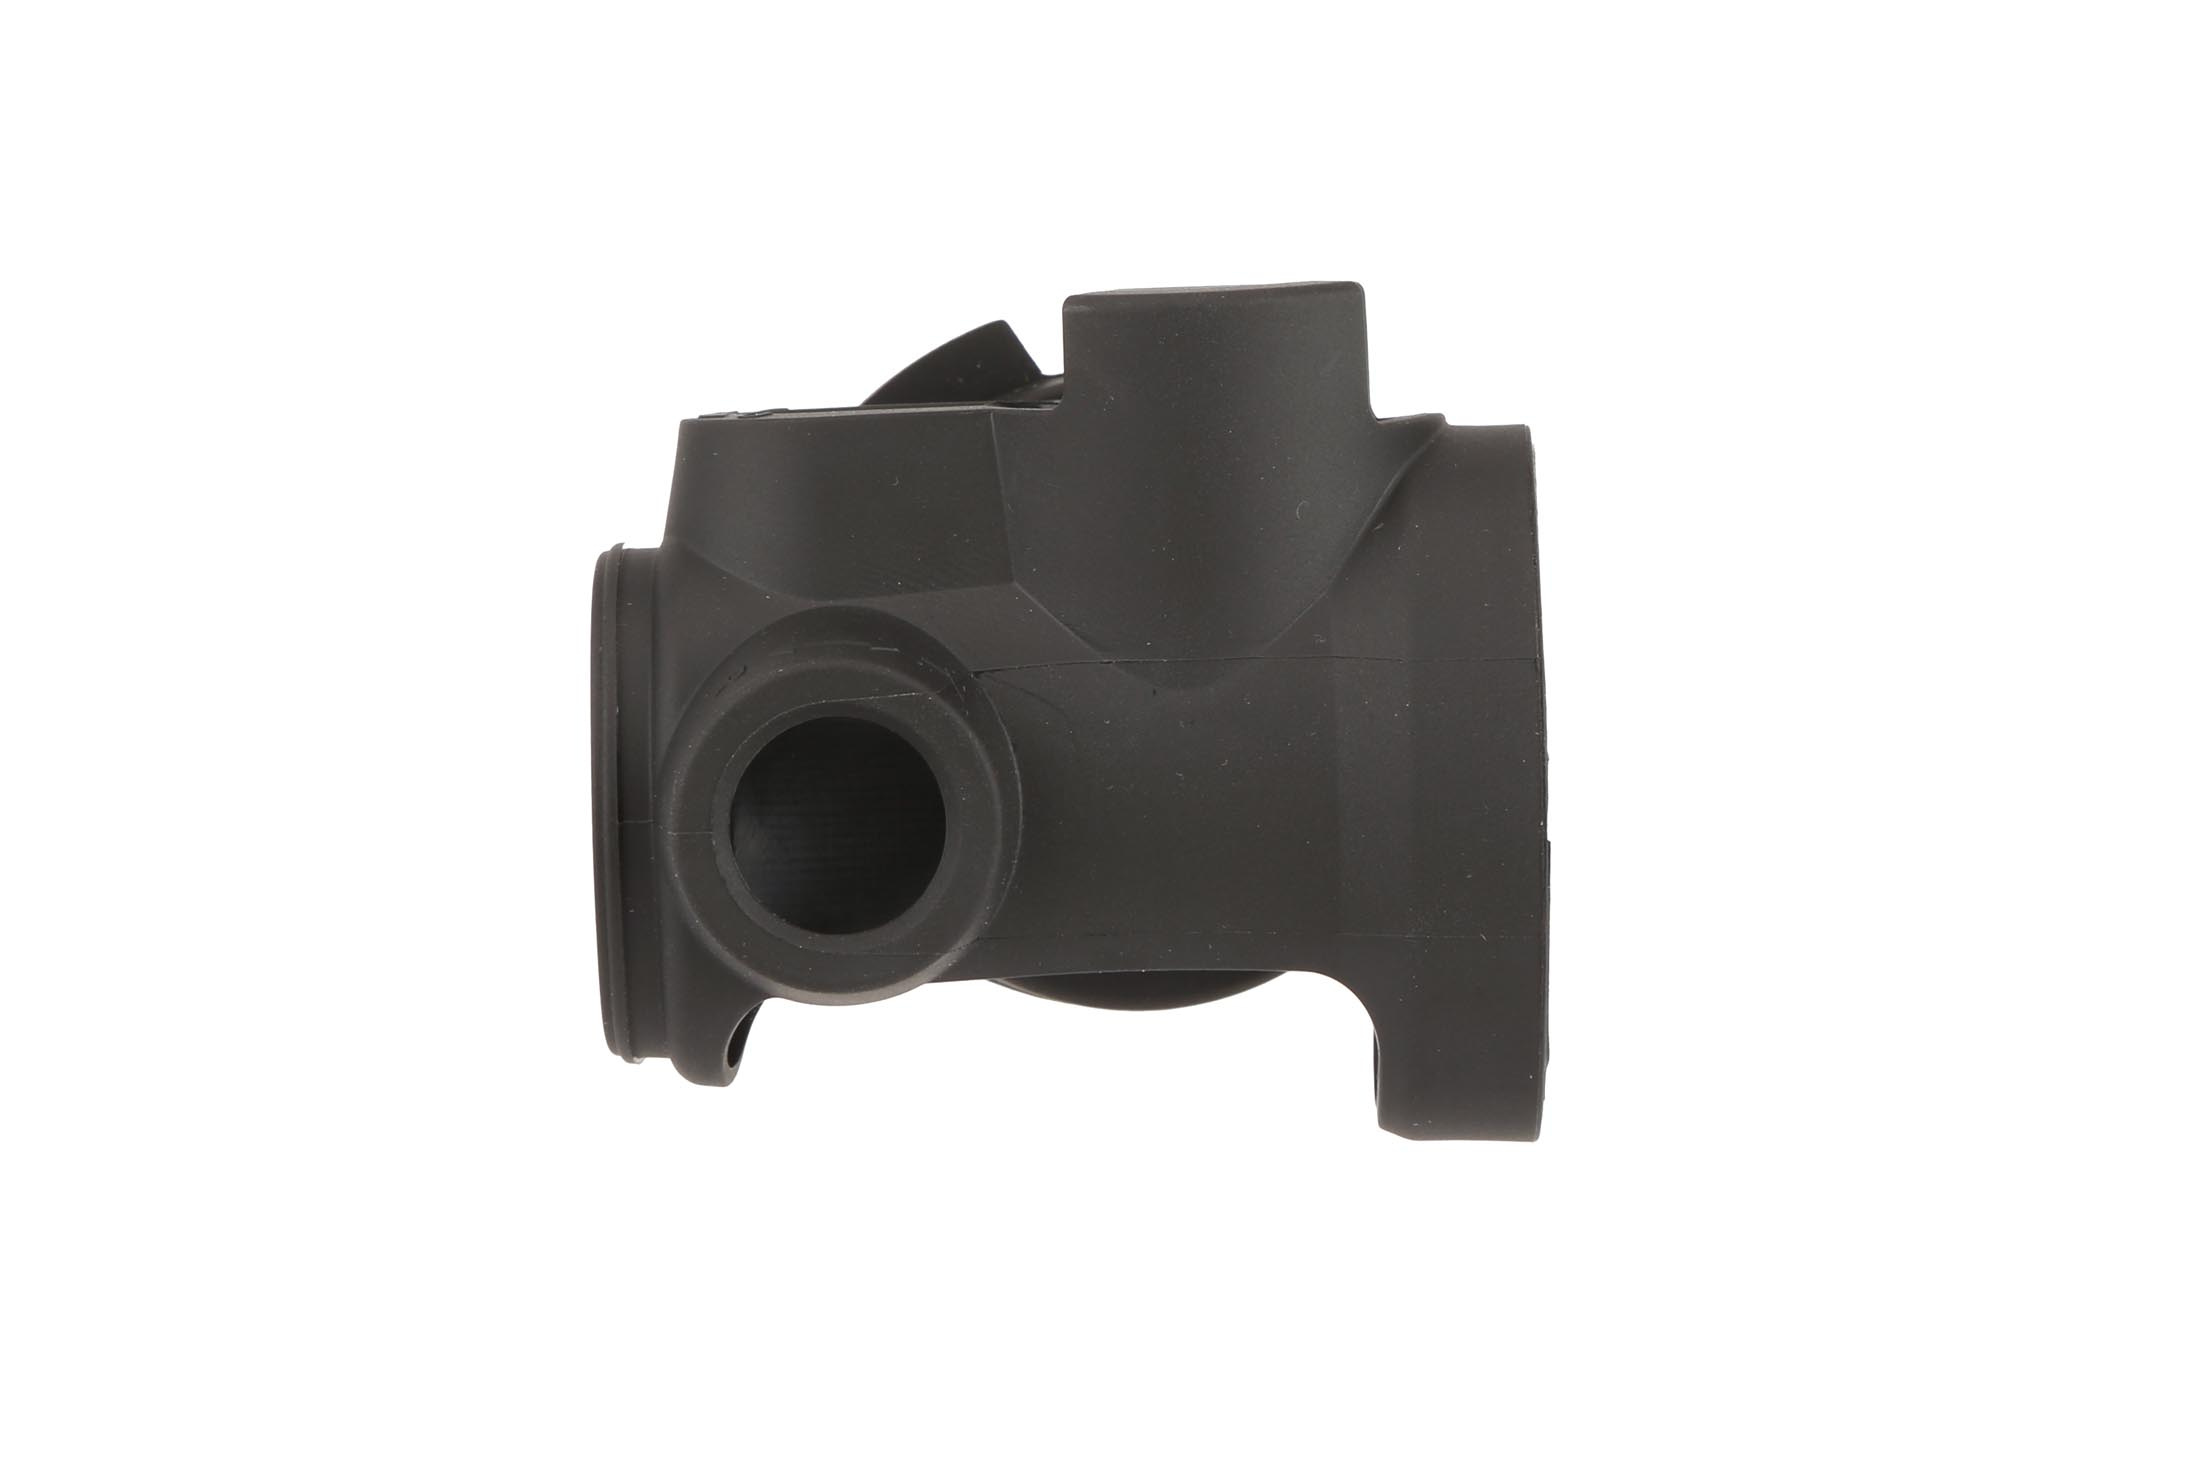 The Trijicon MRO cover from Tango Down offers one hand operation and is easy to install